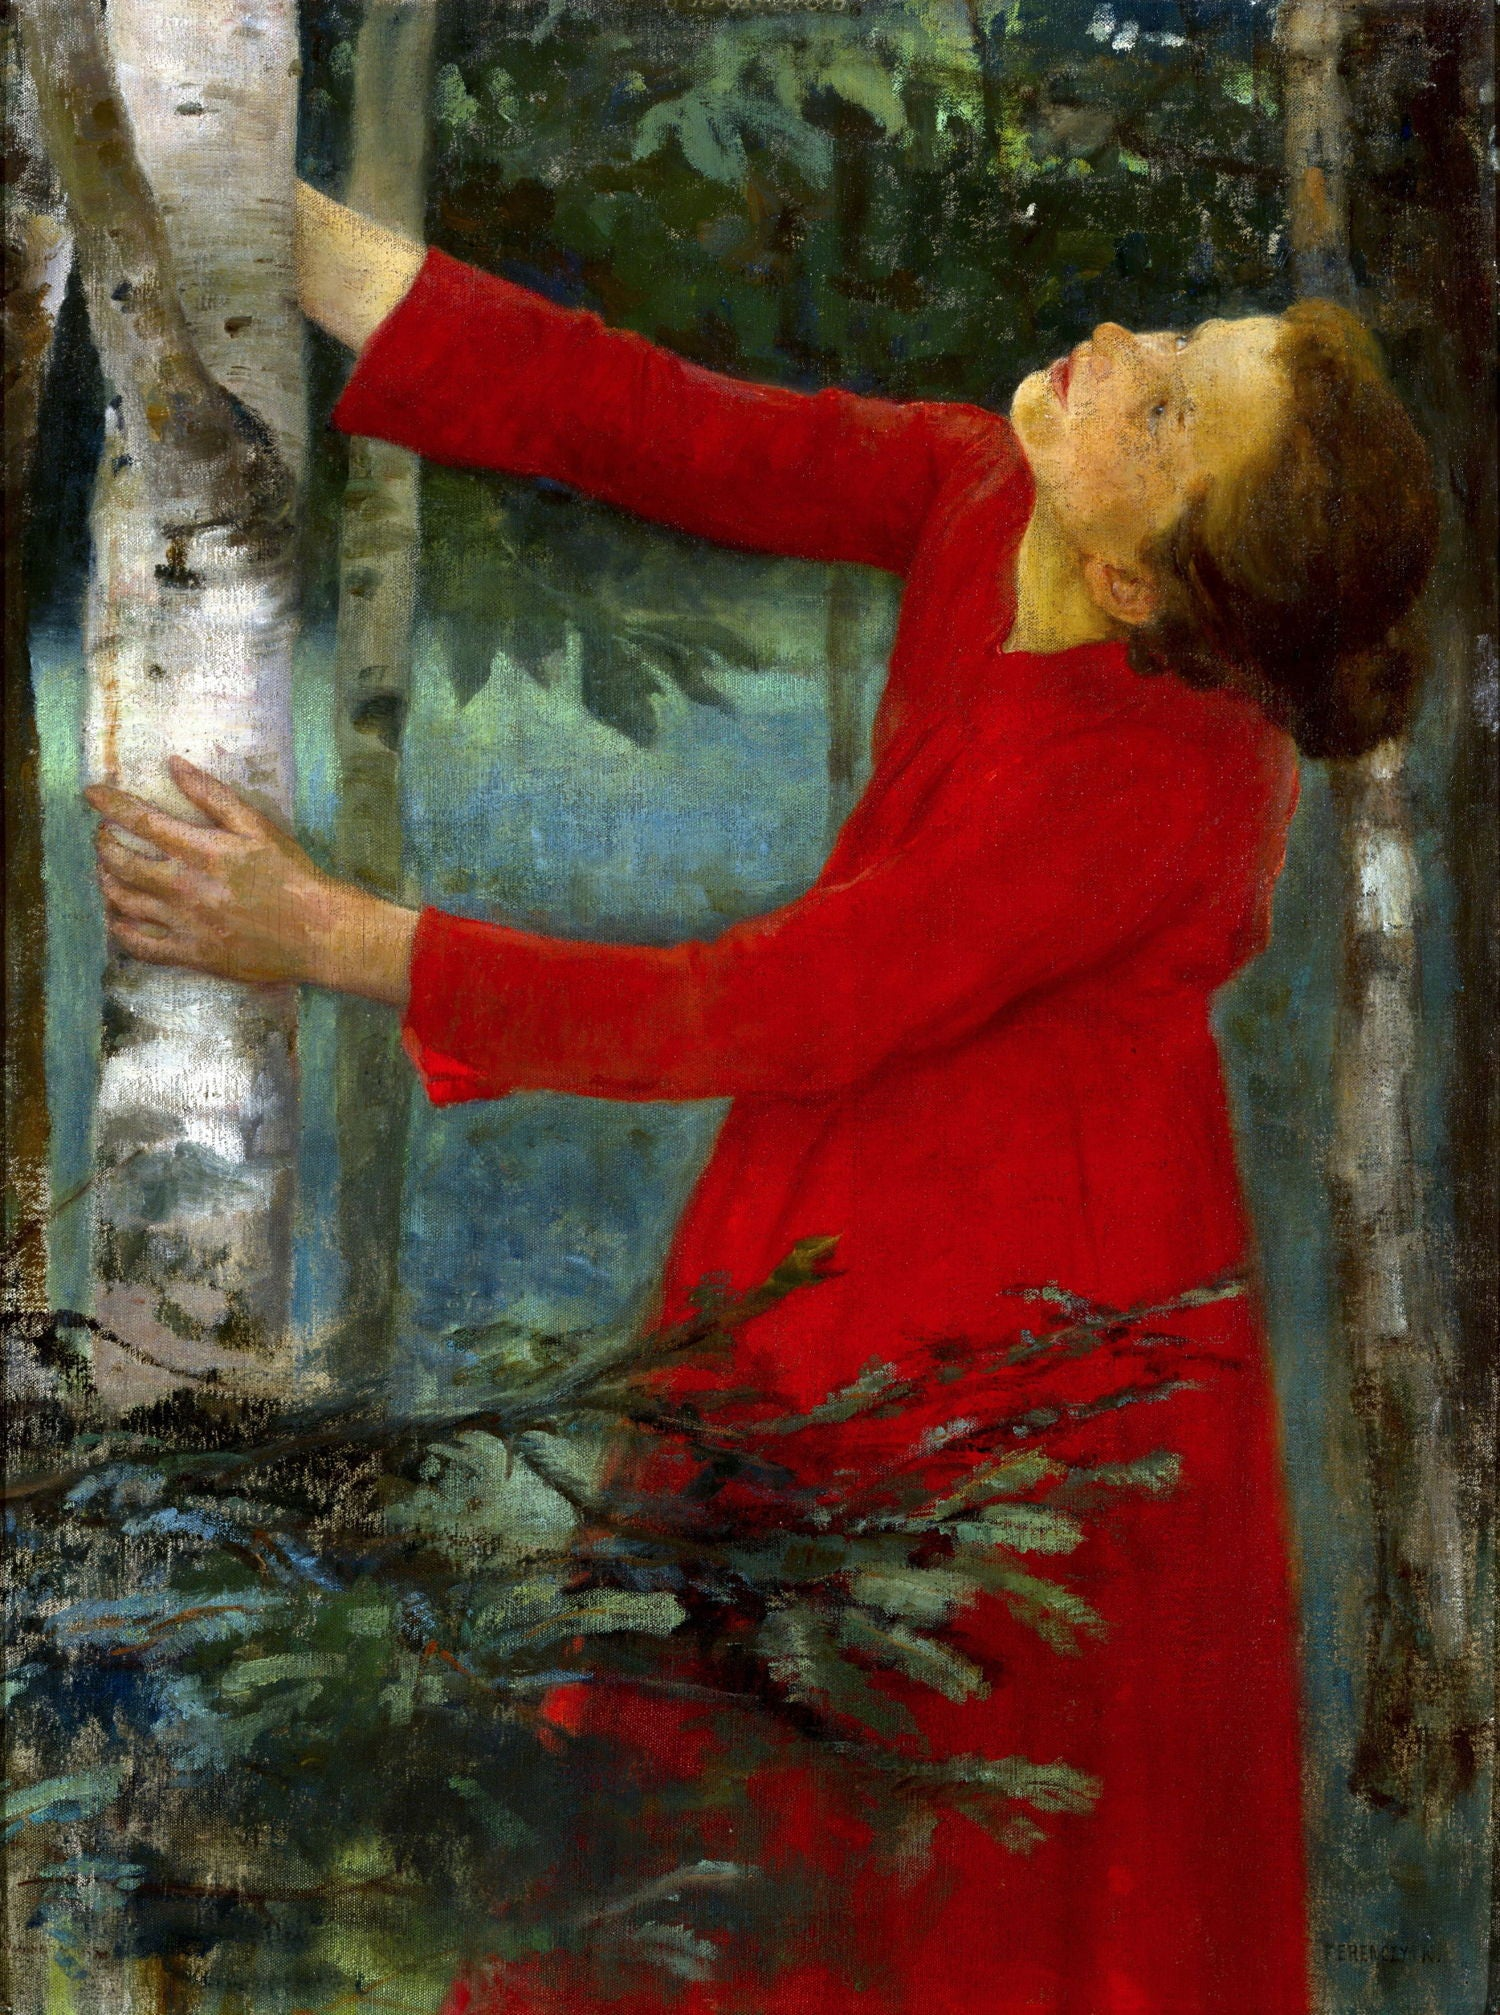 Károly Ferenczy | Buy Posters, Frames, Canvas, Digital Art & Large Size Prints Of The Famous Old Master's Artworks